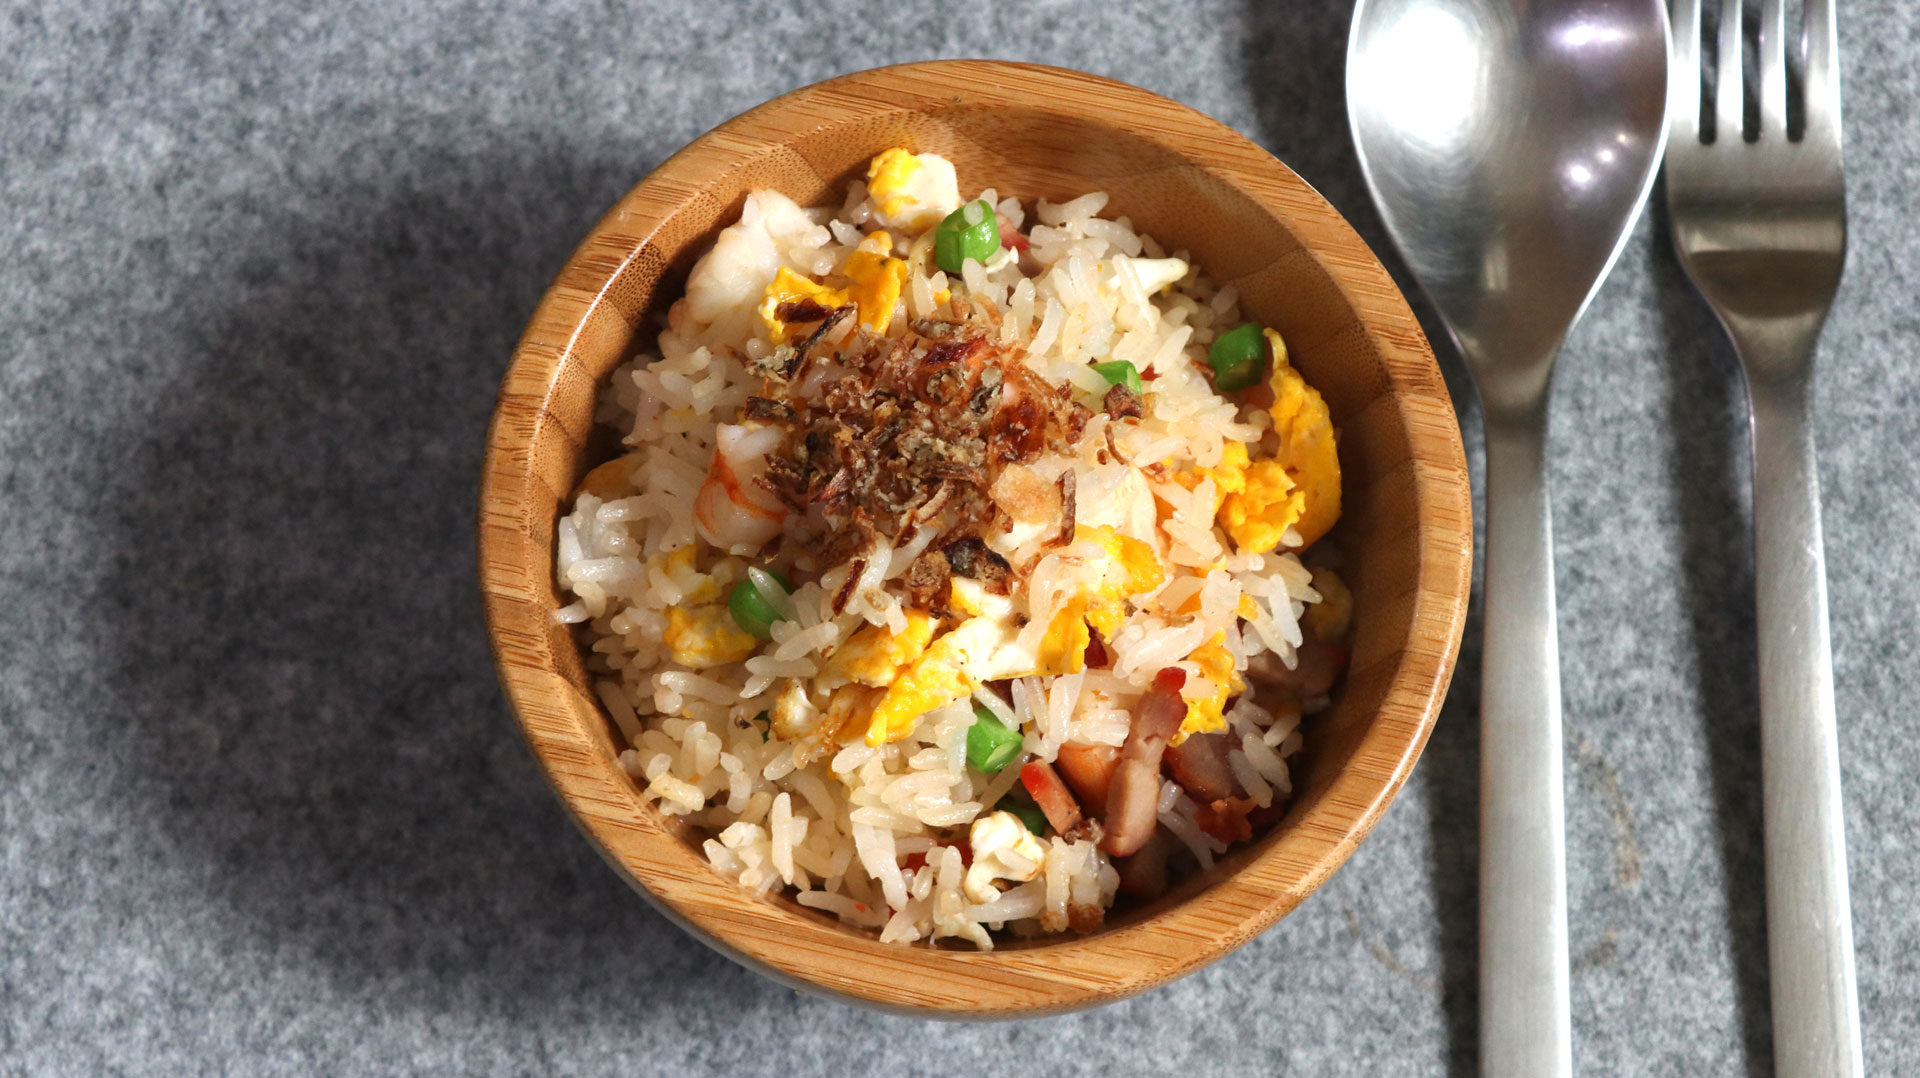 two-bad-chefs-fried-rice-dish-04.jpg